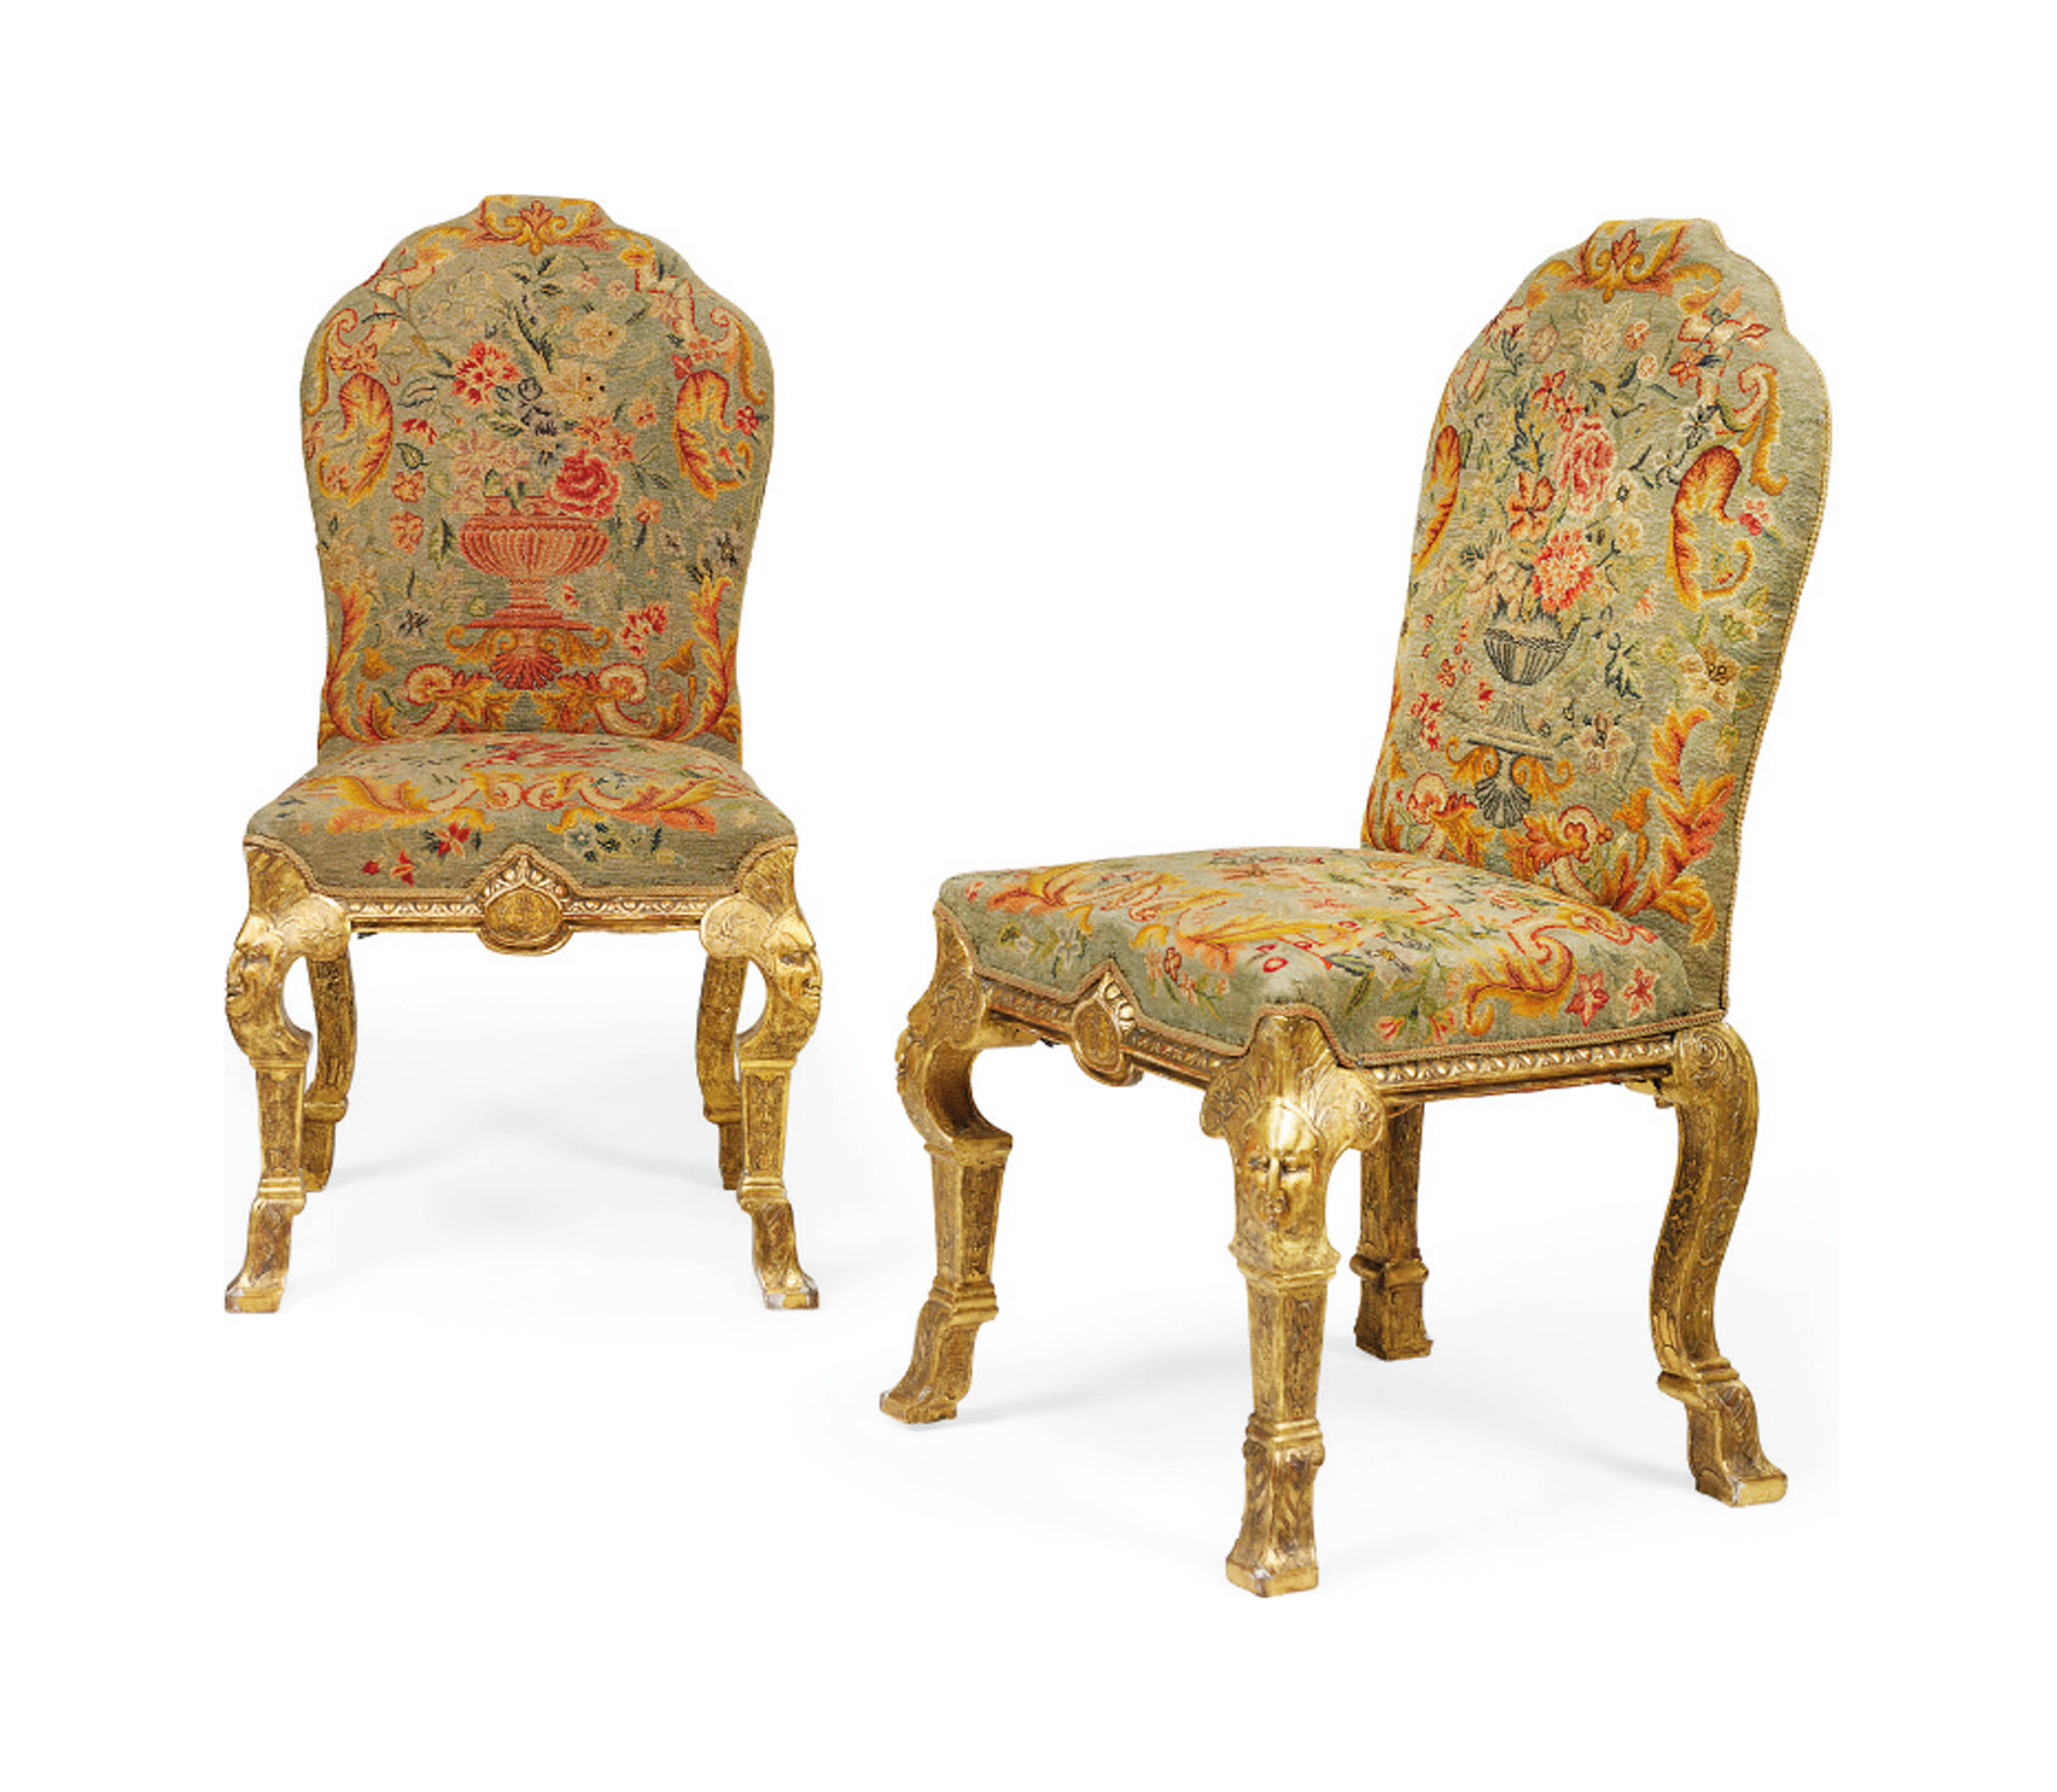 A PAIR OF GEORGE I-STYLE GILTWOOD SIDE CHAIRS